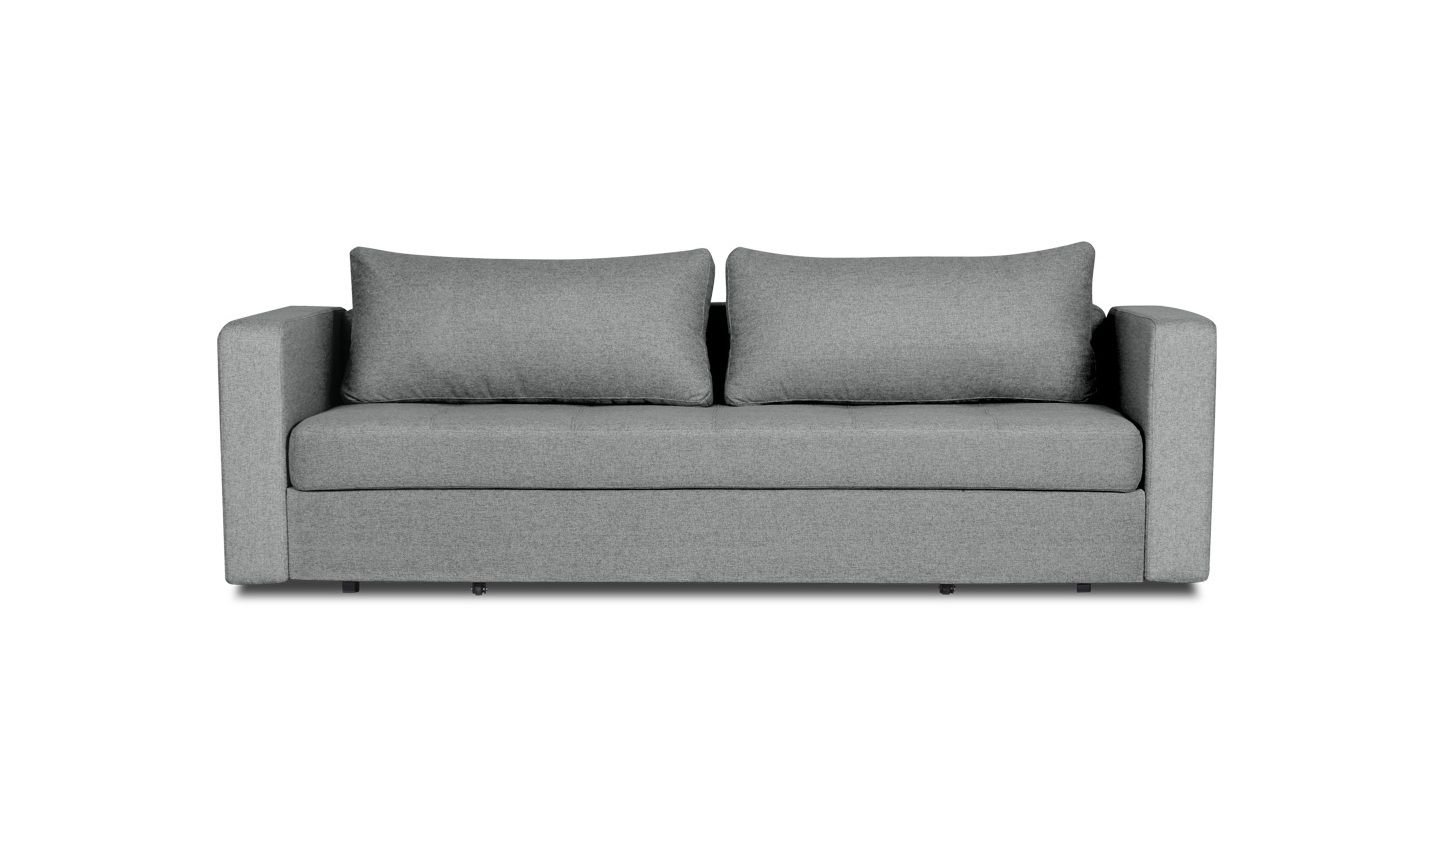 Sofa Grau Online Schlafsofa Eperny Webstoff Apartment Stuff Pinterest Sofa